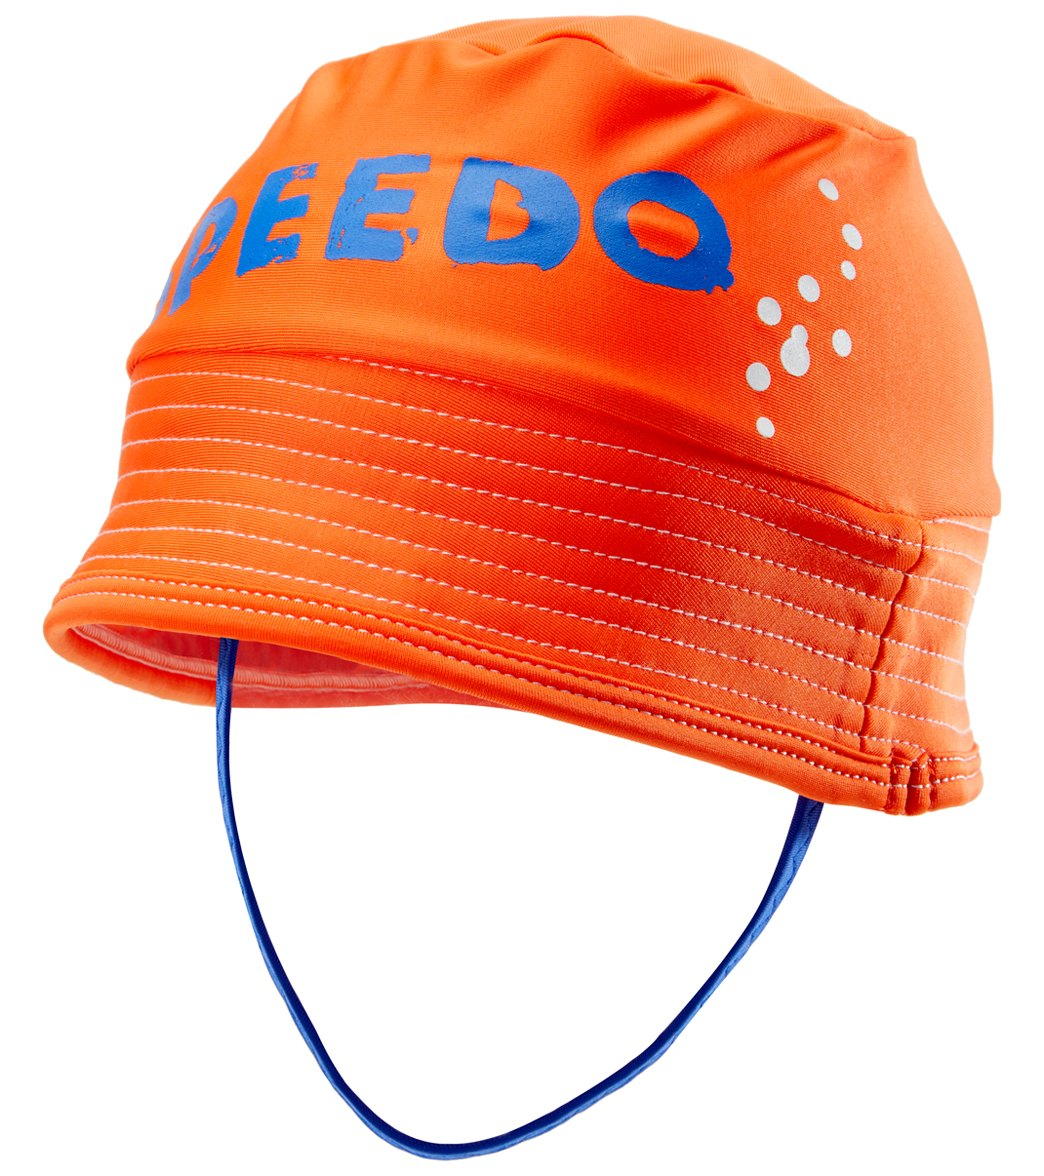 Speedo Boys  UV Bucket Hat (Infant-3yrs) at SwimOutlet.com e0e1c7f4e46